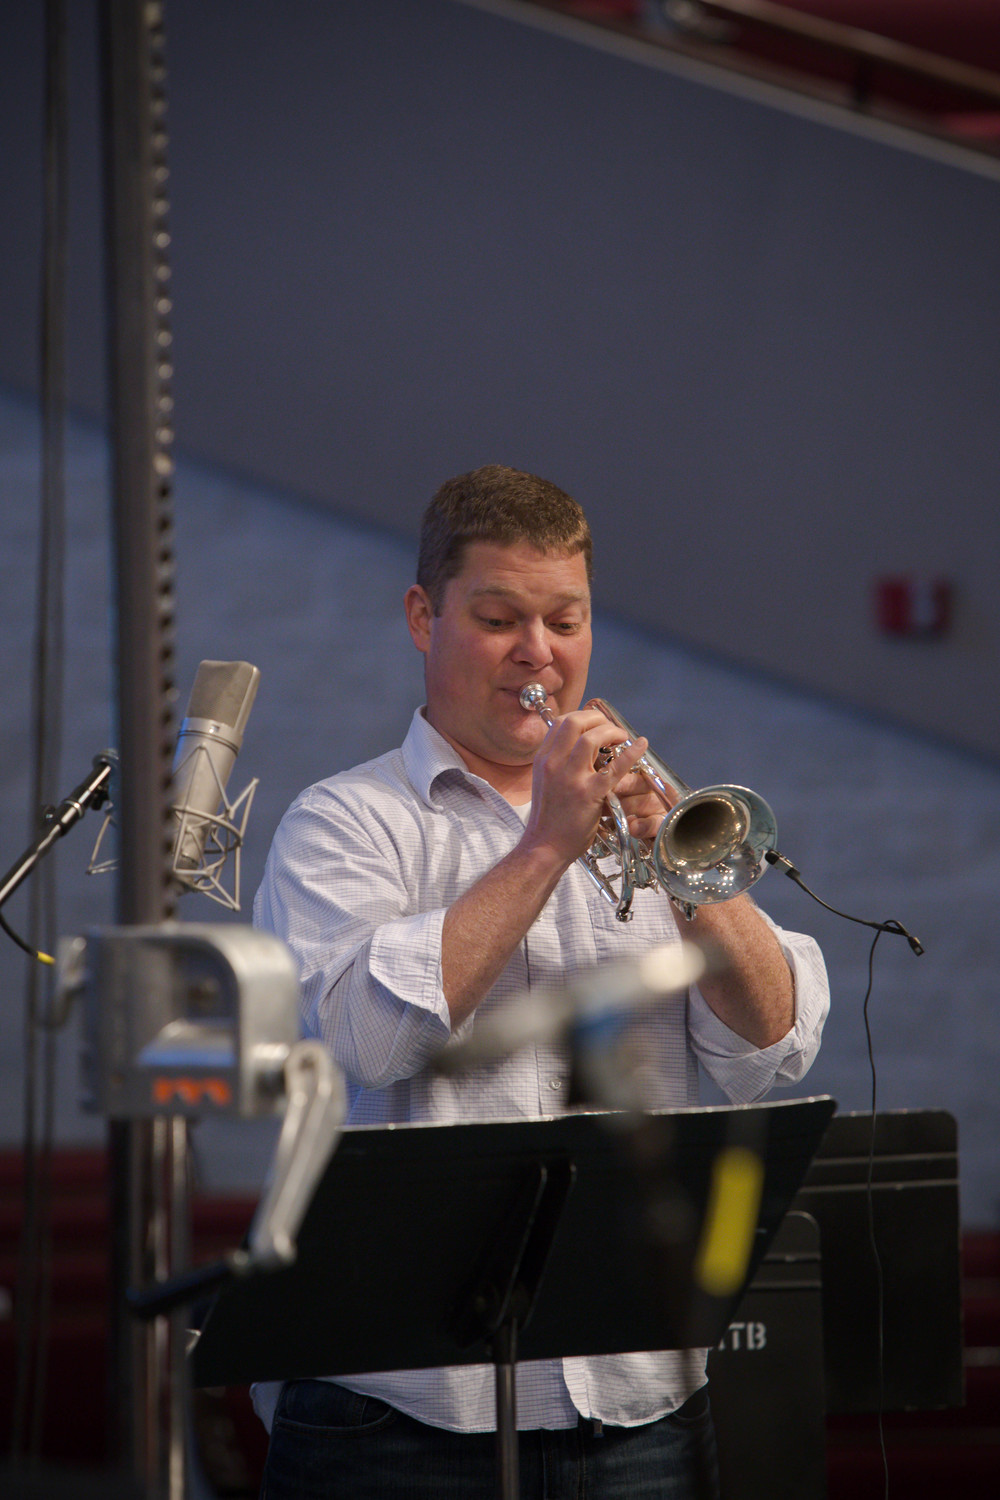 Soloist Jeff Barrington